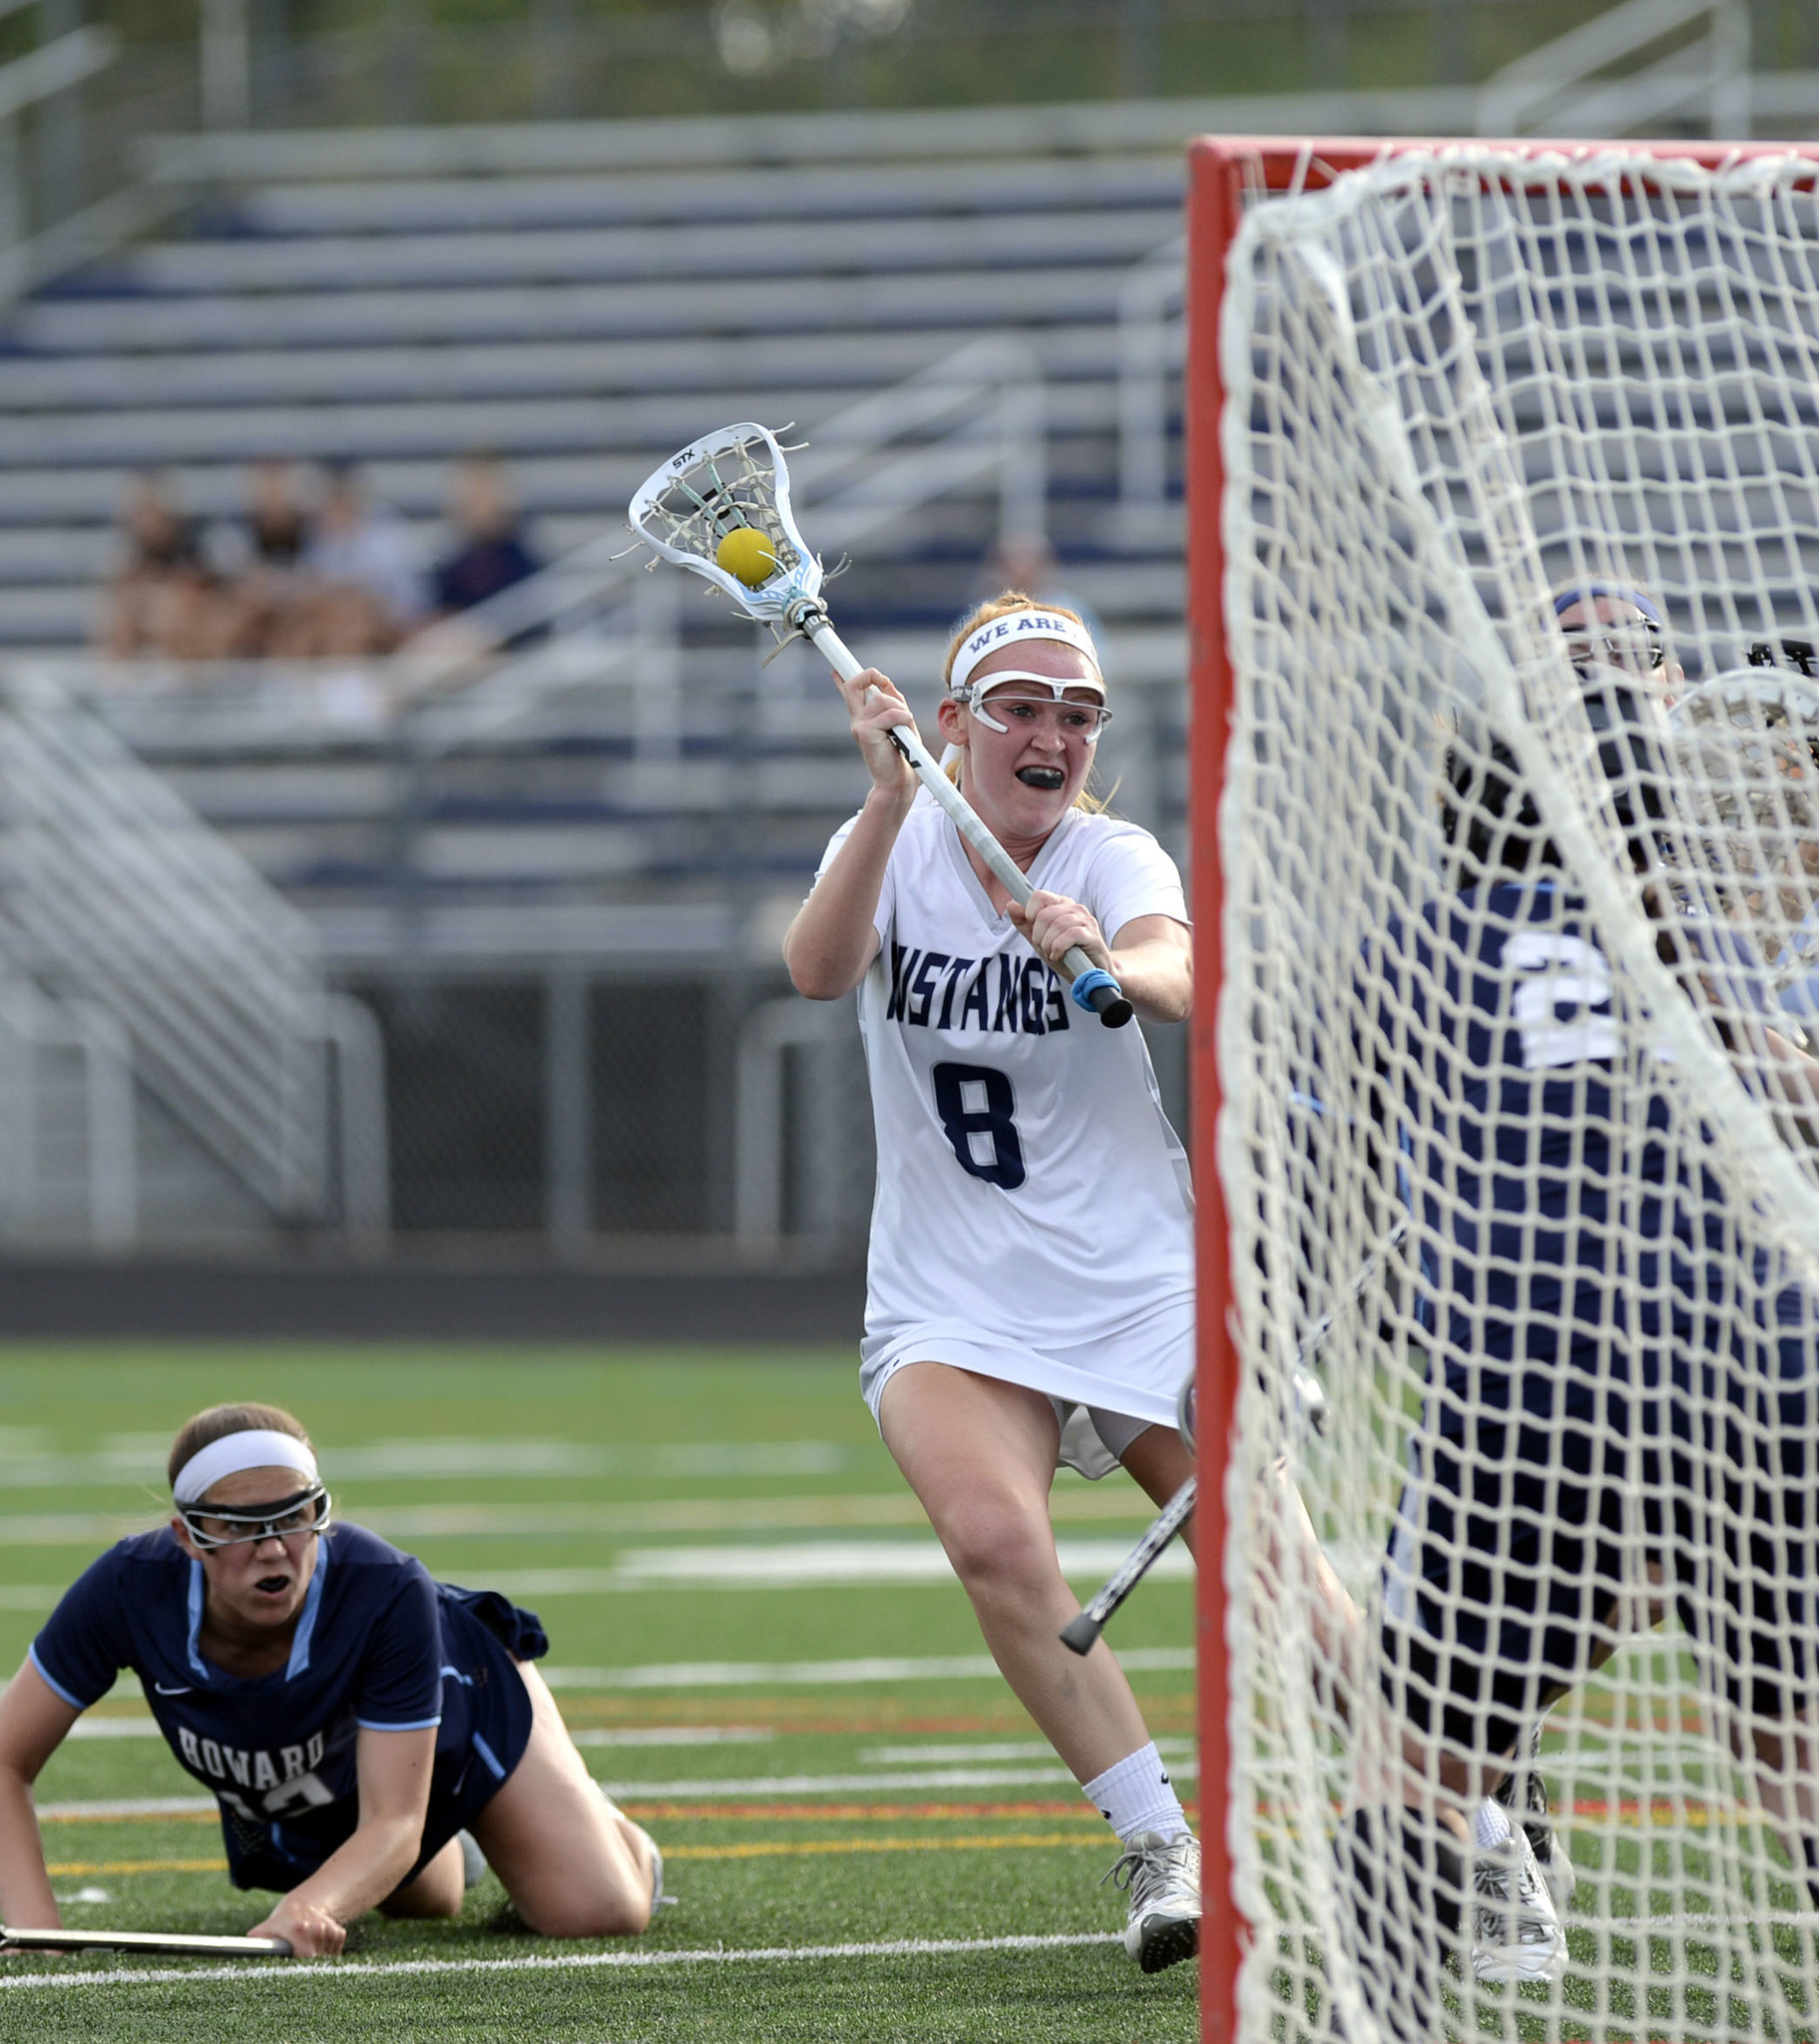 Digest (Feb. 21) Marriotts Ridge grad Carly Miller Miller propels Mount St. Mary's to women's lacrosse victory